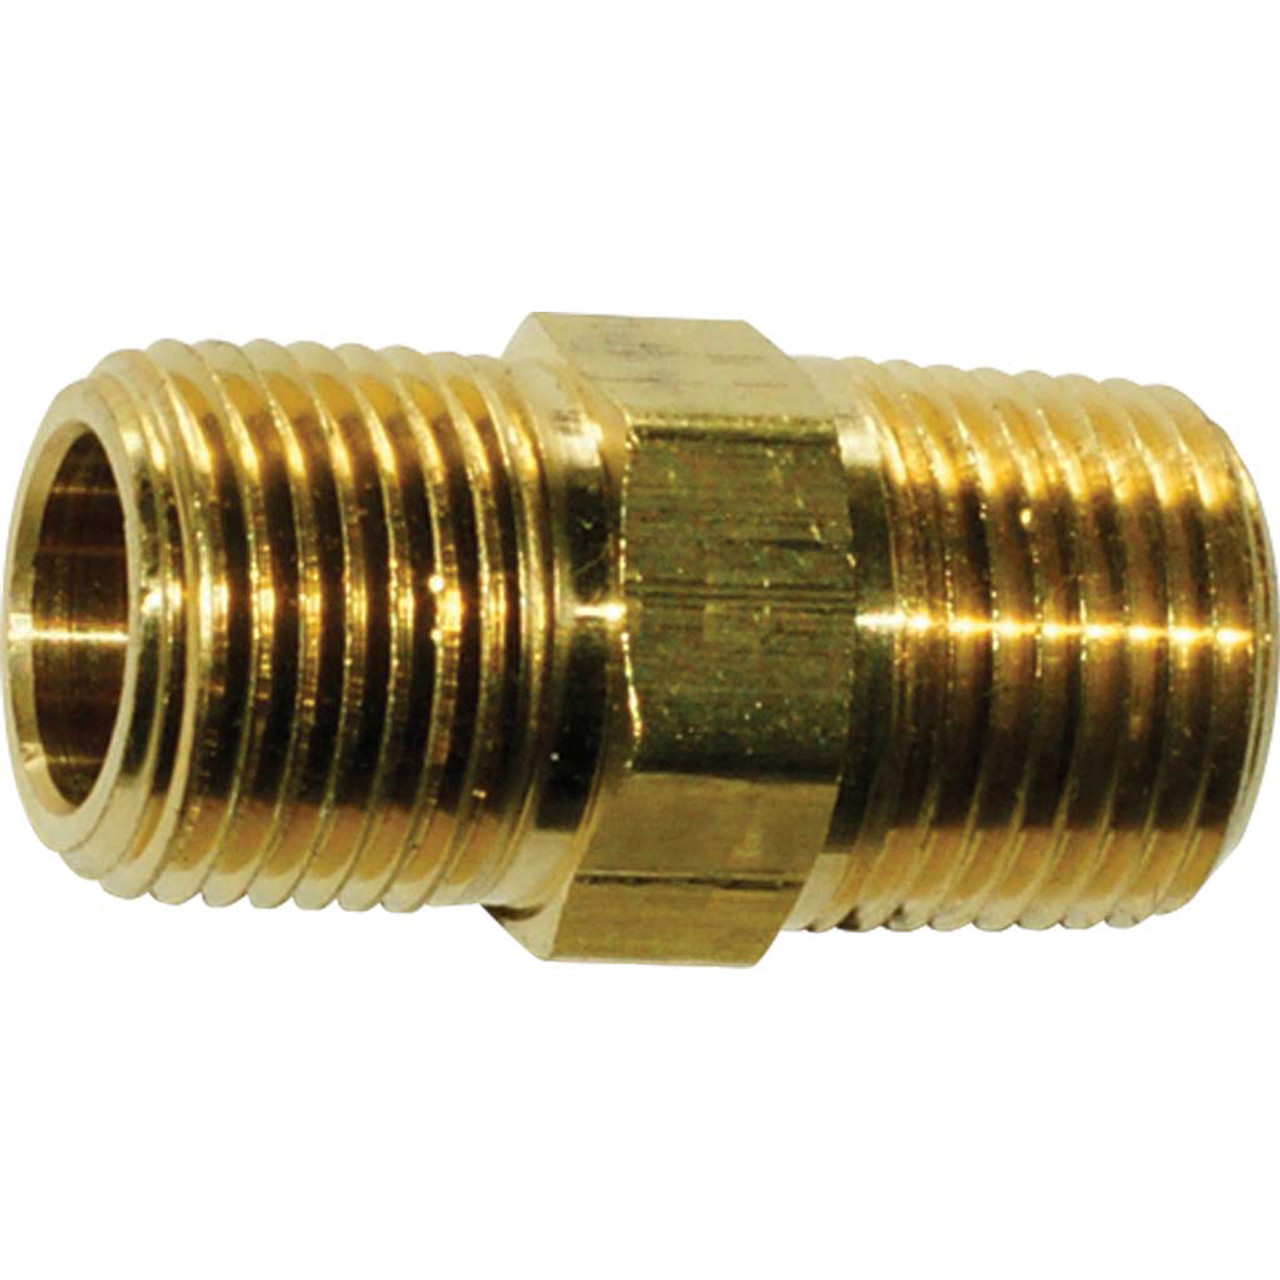 YHMY Tube Connector 10pcs 1//8 1//4 3//8 1//2 3//4 BSP Female Thread Brass Pipe Hex Head Brass End Cap Plug Fitting Coupler Connector Adapter Drip Irrigation Fittings Kit Thread Specification : 14